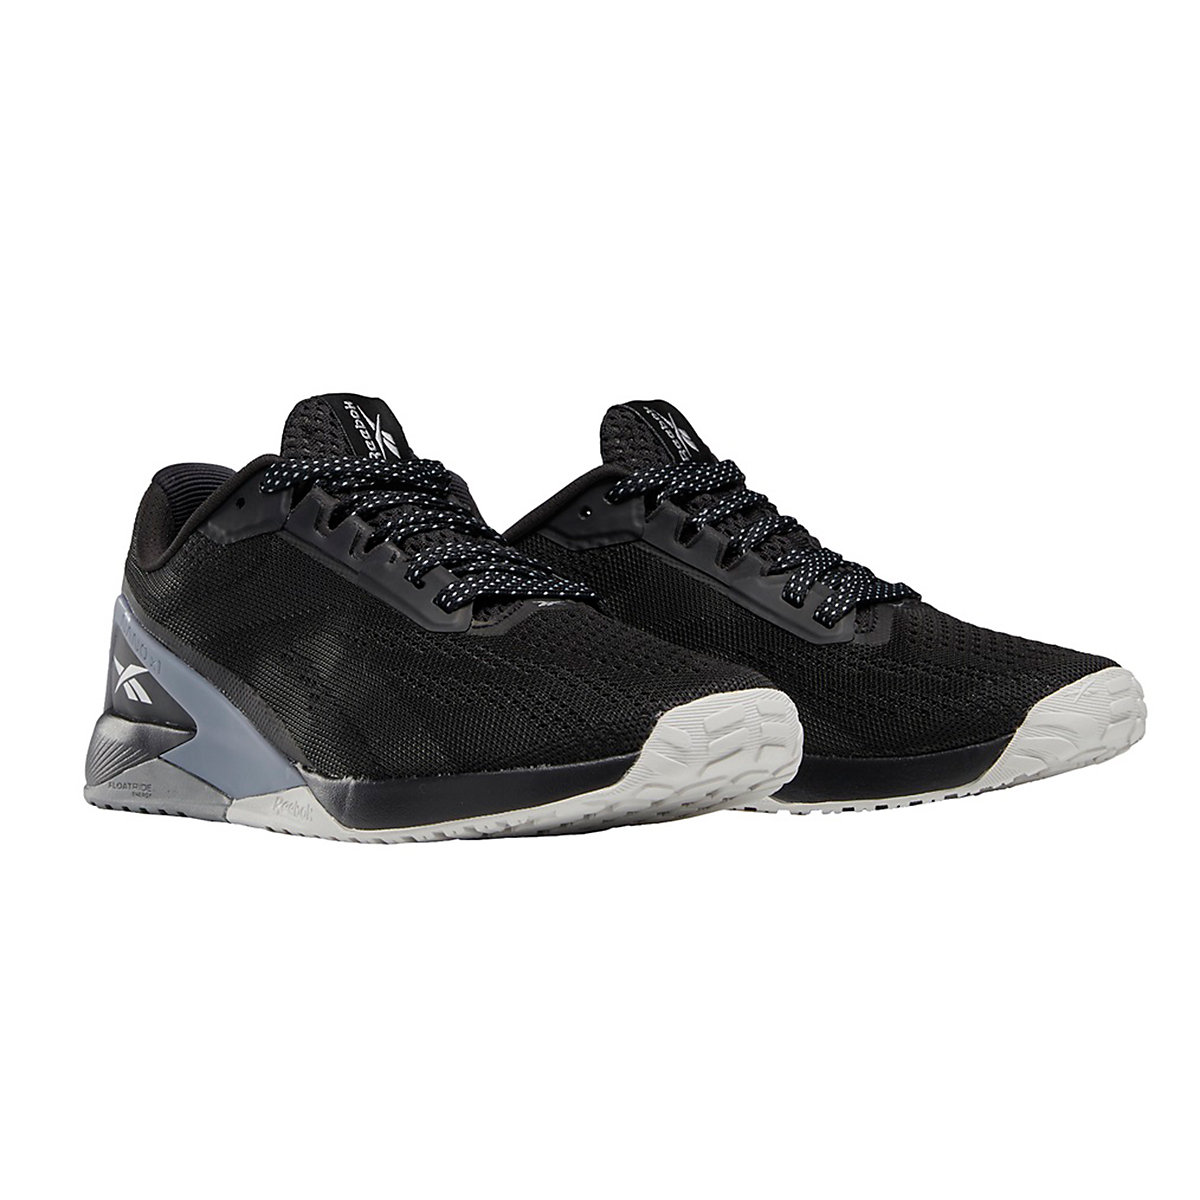 Women's Reebok Nano X1 Training Shoe - Color: Black/Cool Shadow/Cold Grey - Size: 5 - Width: Regular, Black/Cool Shadow/Cold Grey, large, image 3